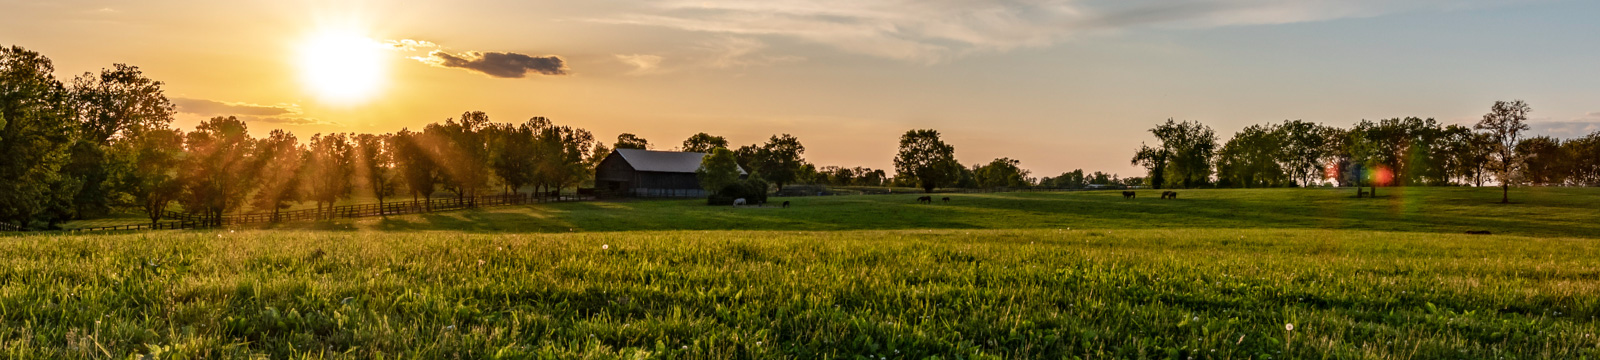 Image of sunset over farm field.